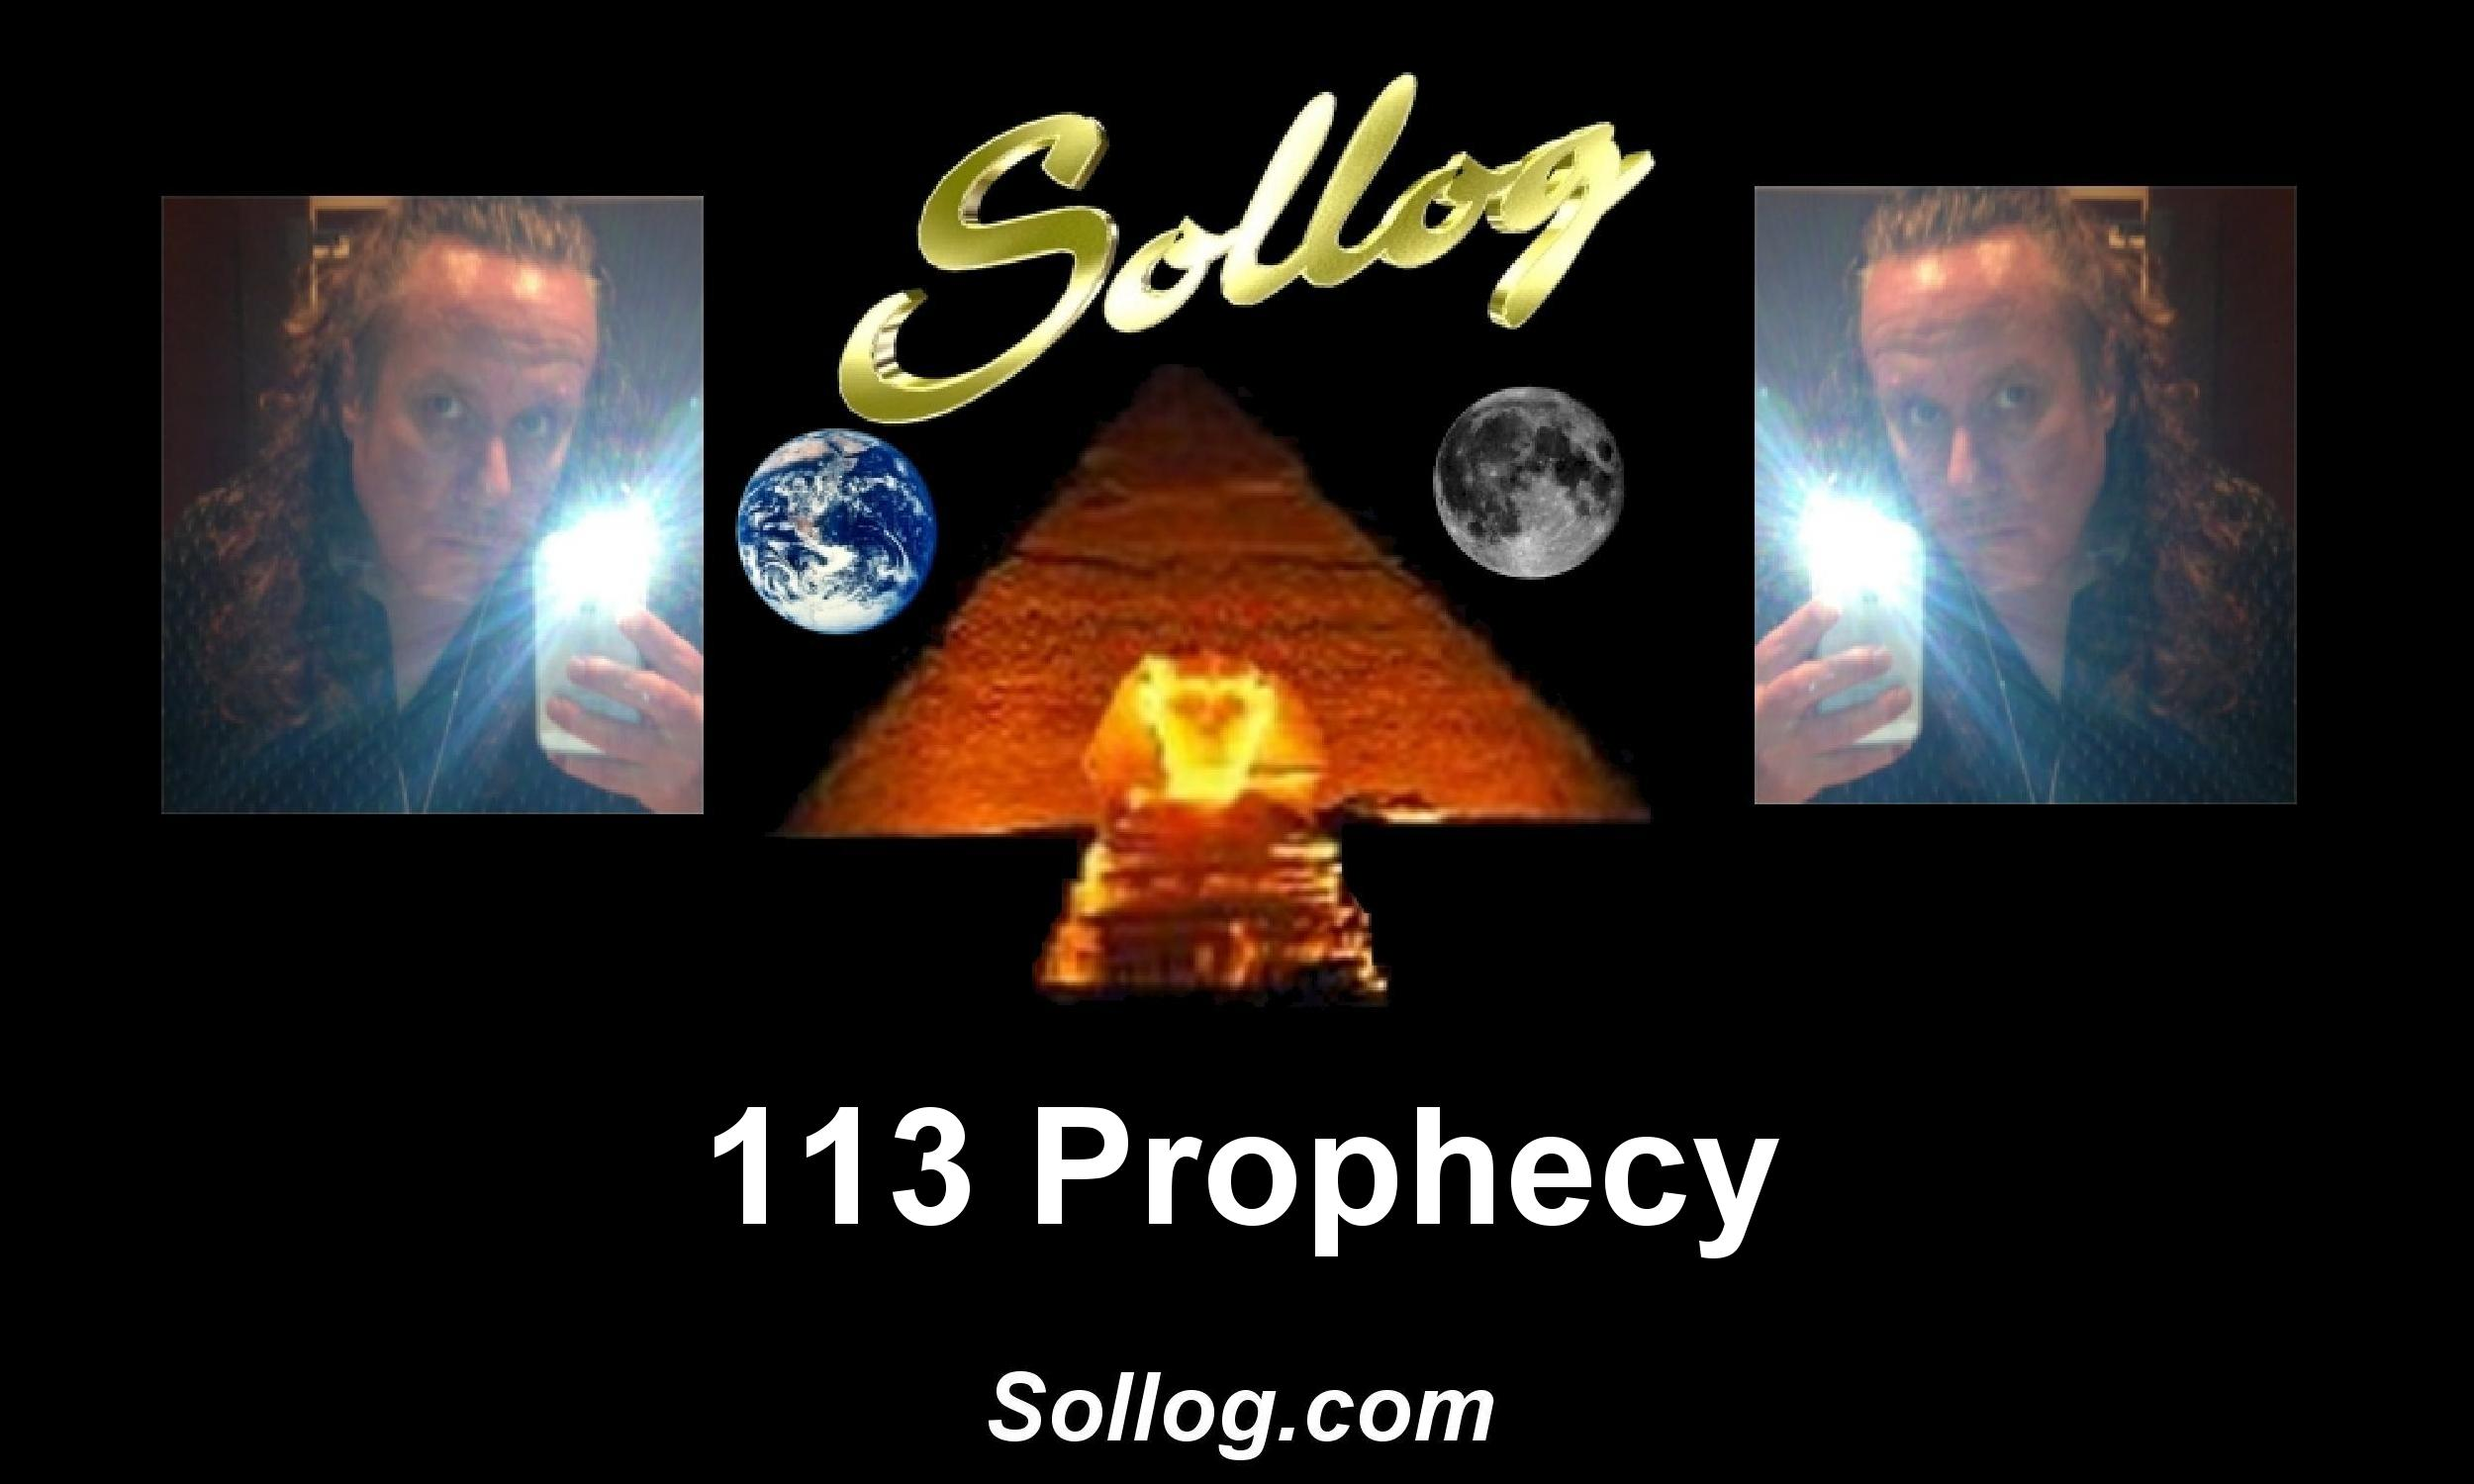 113 Prophecy